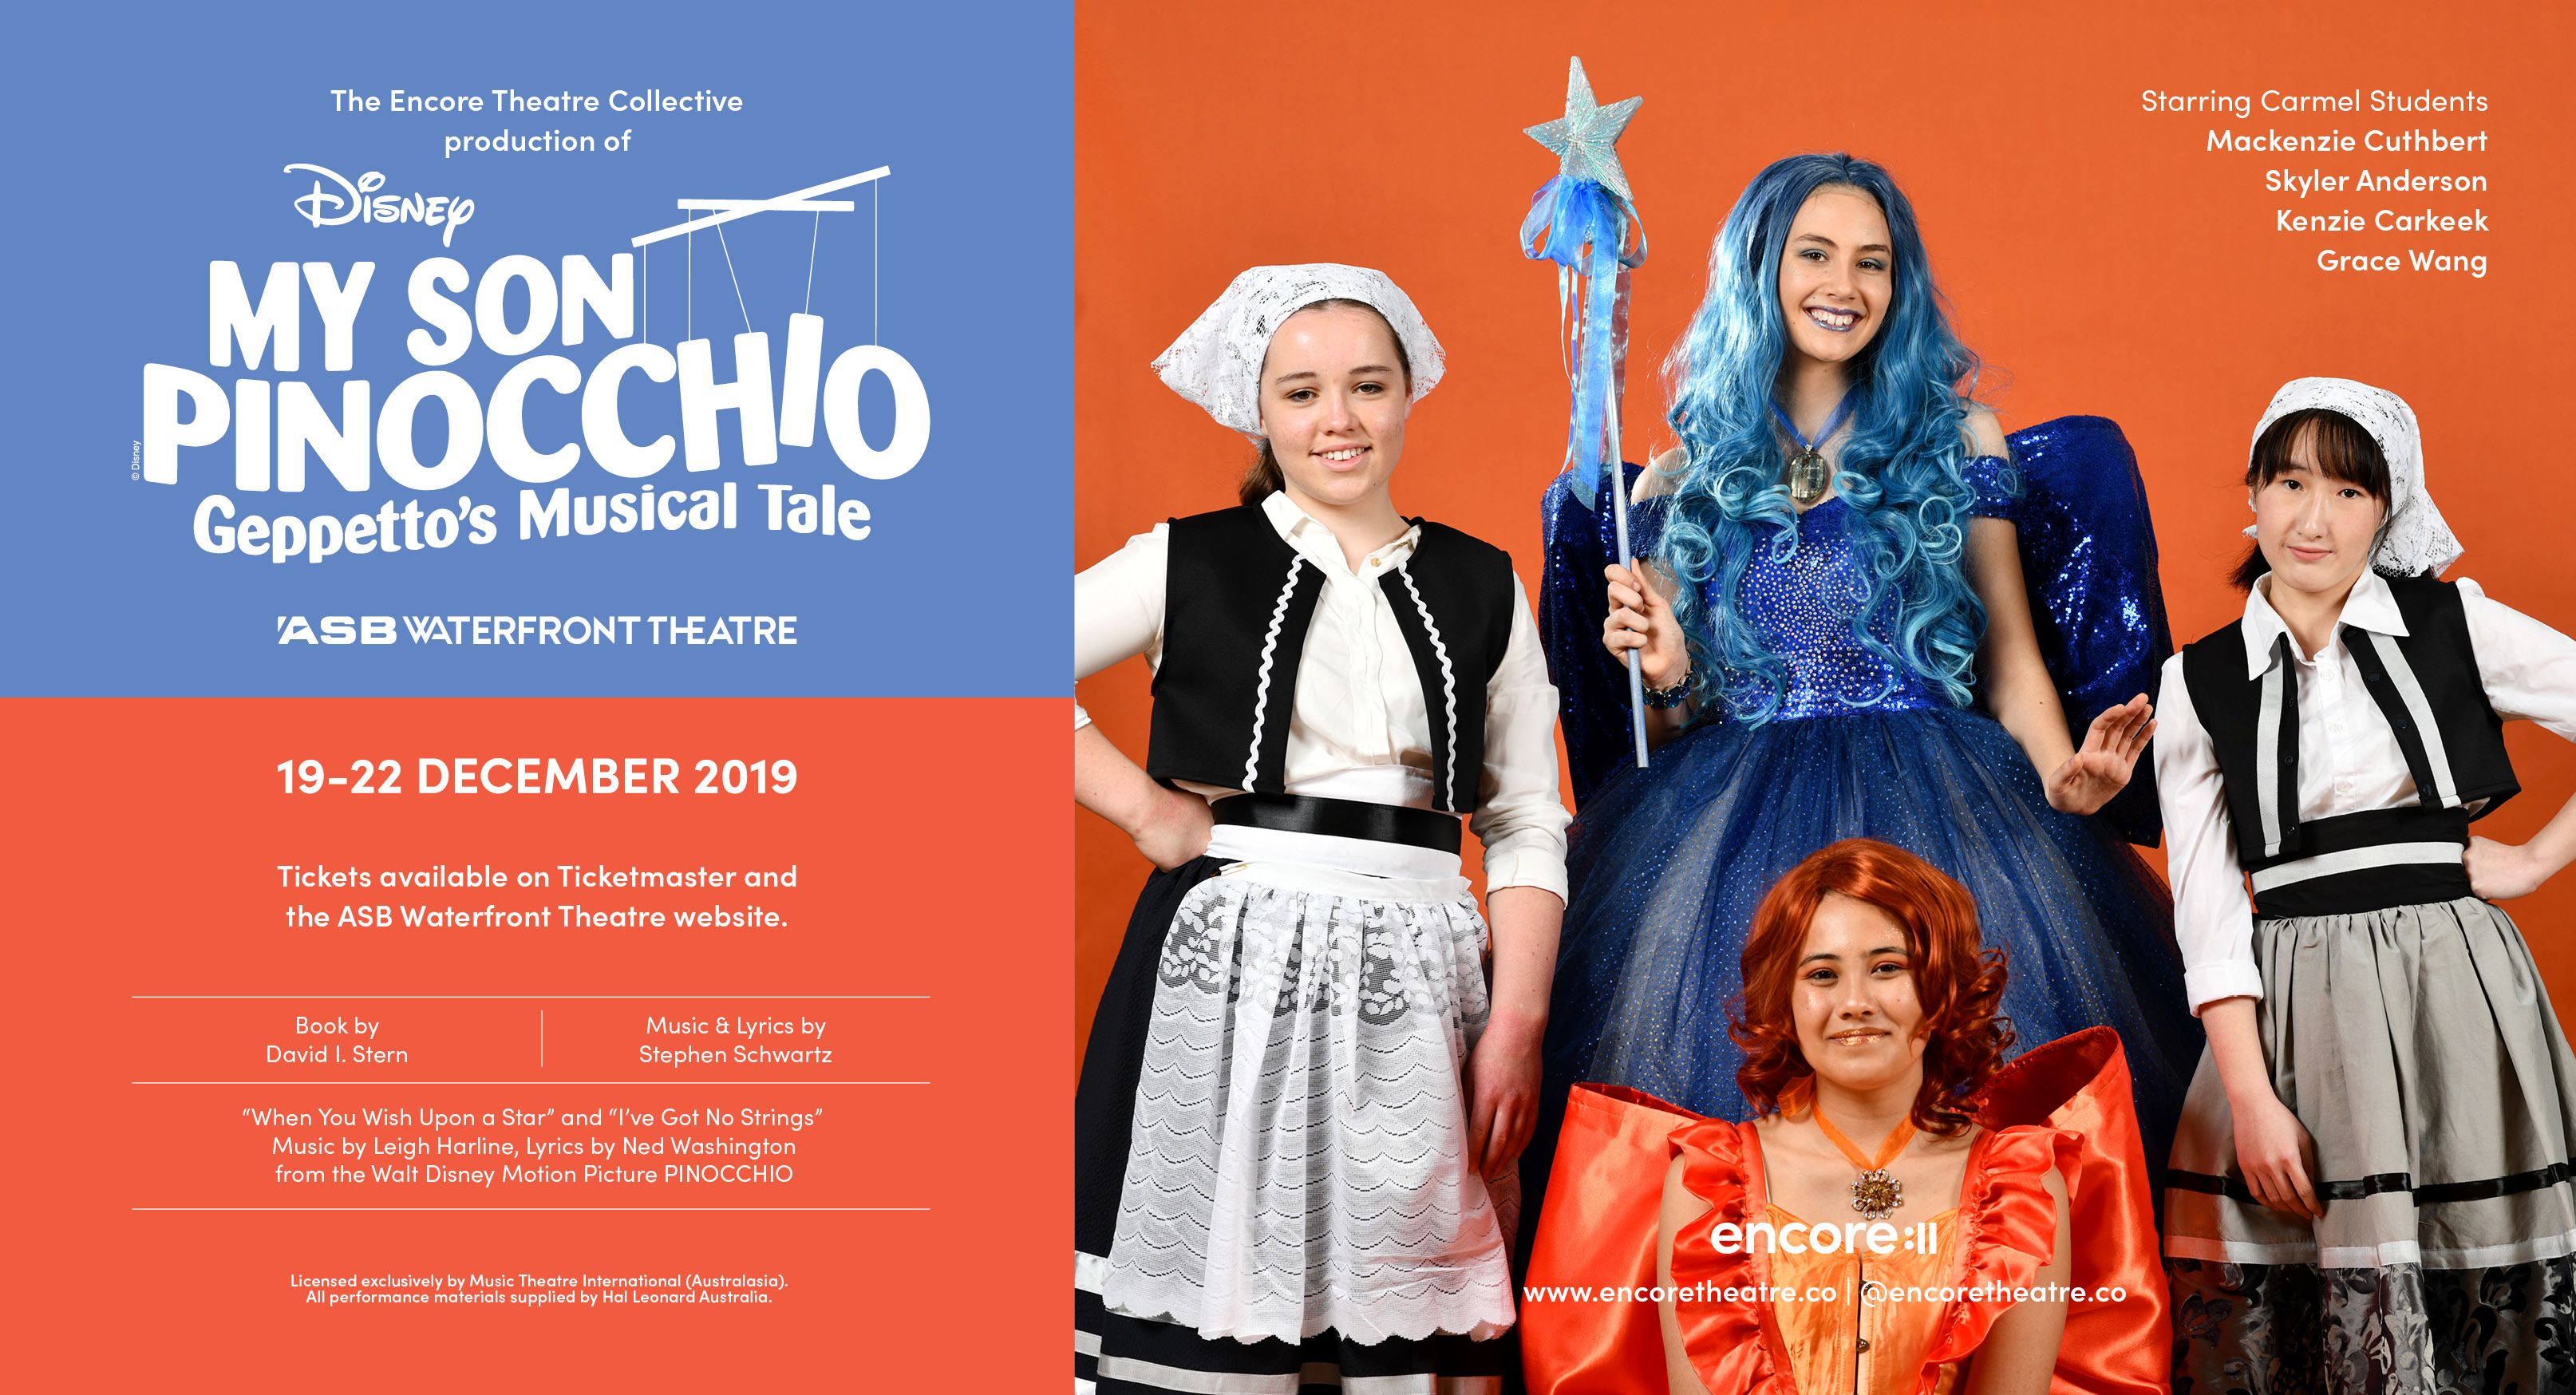 Carmel Students Star In Upcoming Show